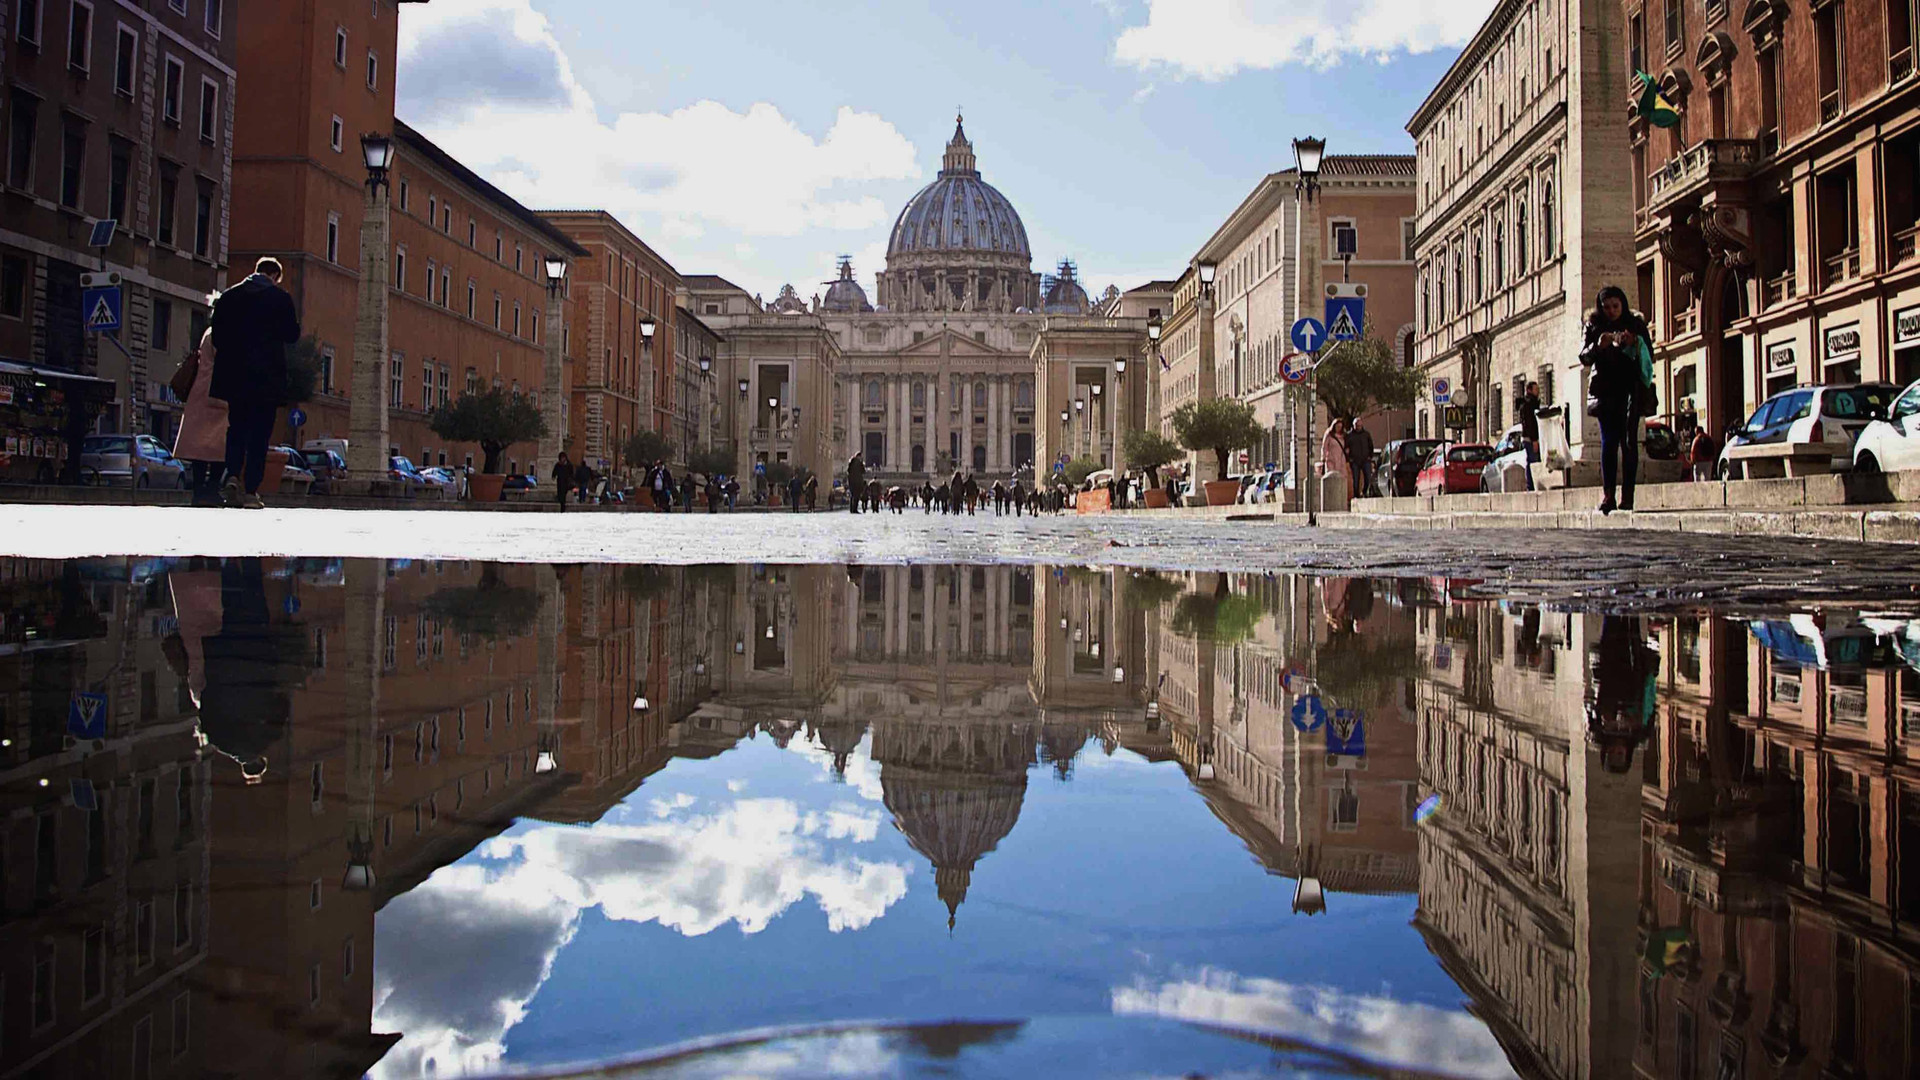 Reflections of Saint Peter's Church